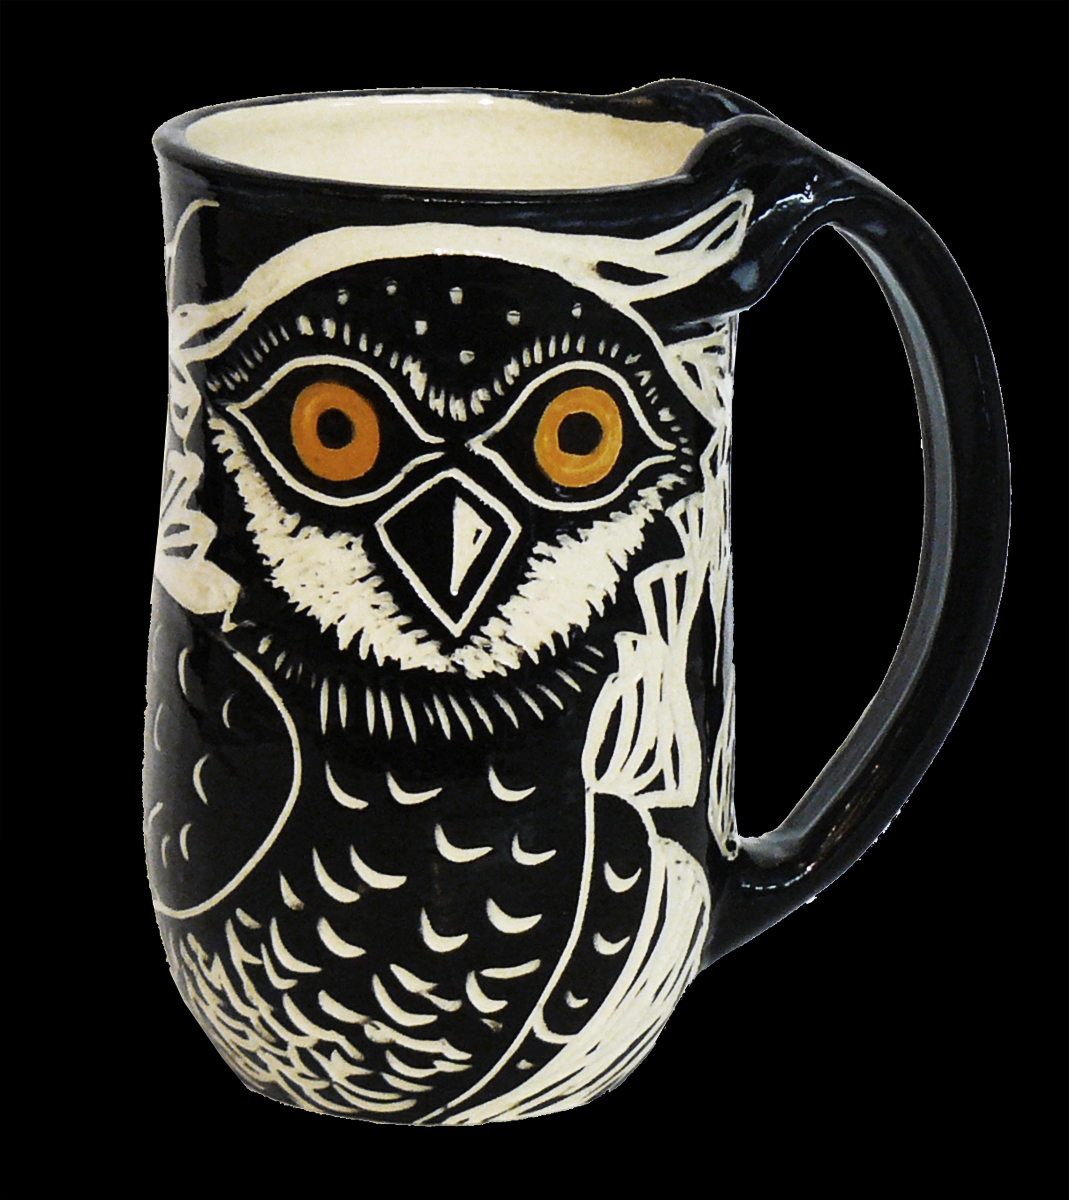 Burrowing Owl Mug - Click for more Air Mugs